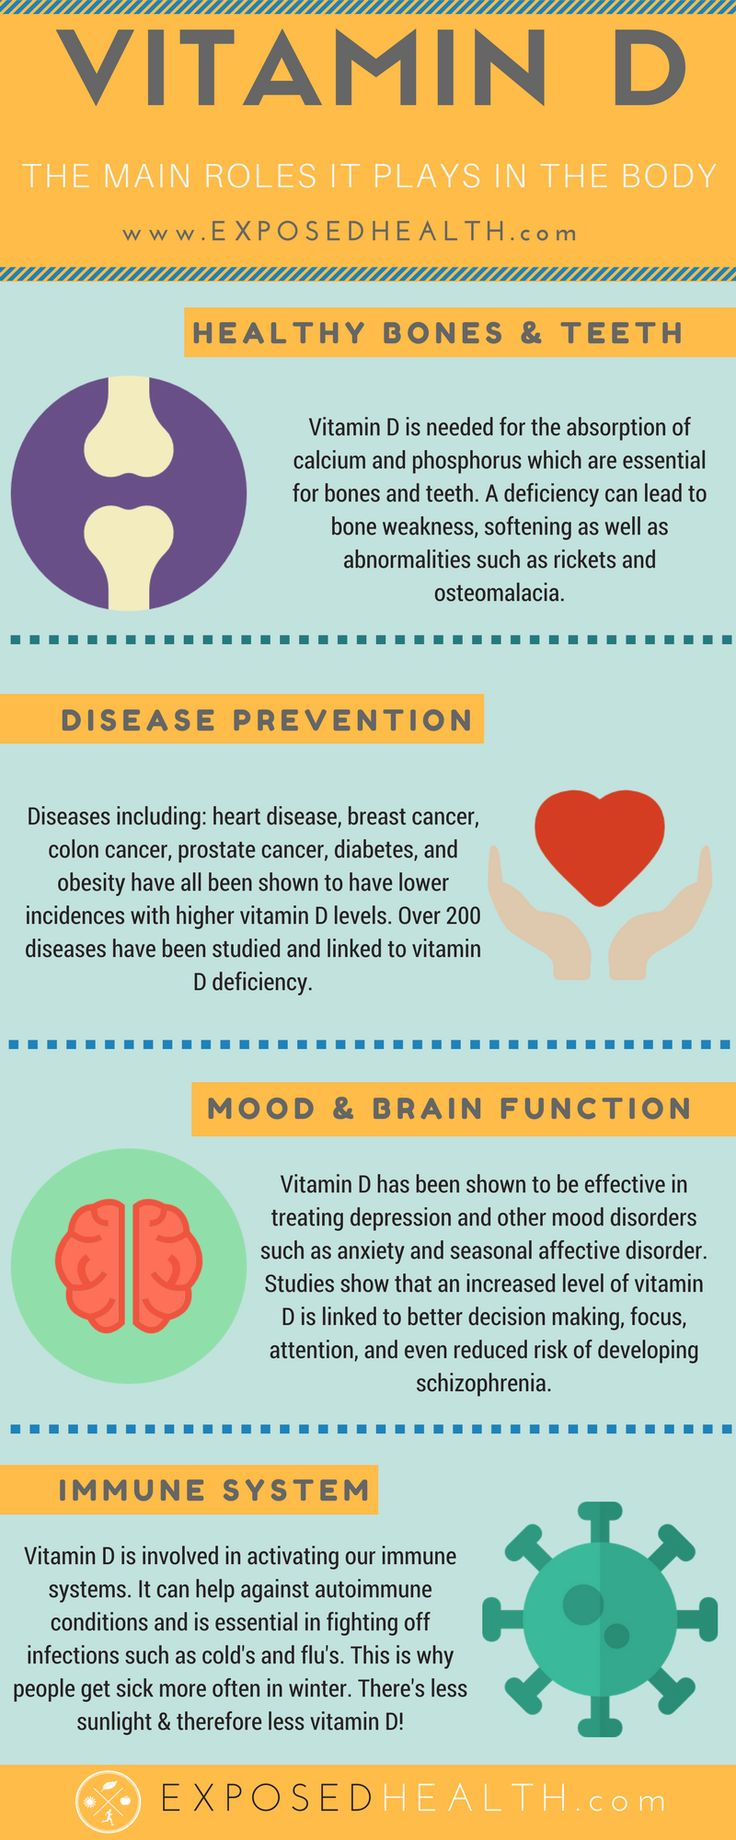 What Does Vitamin D Do? - infograpic